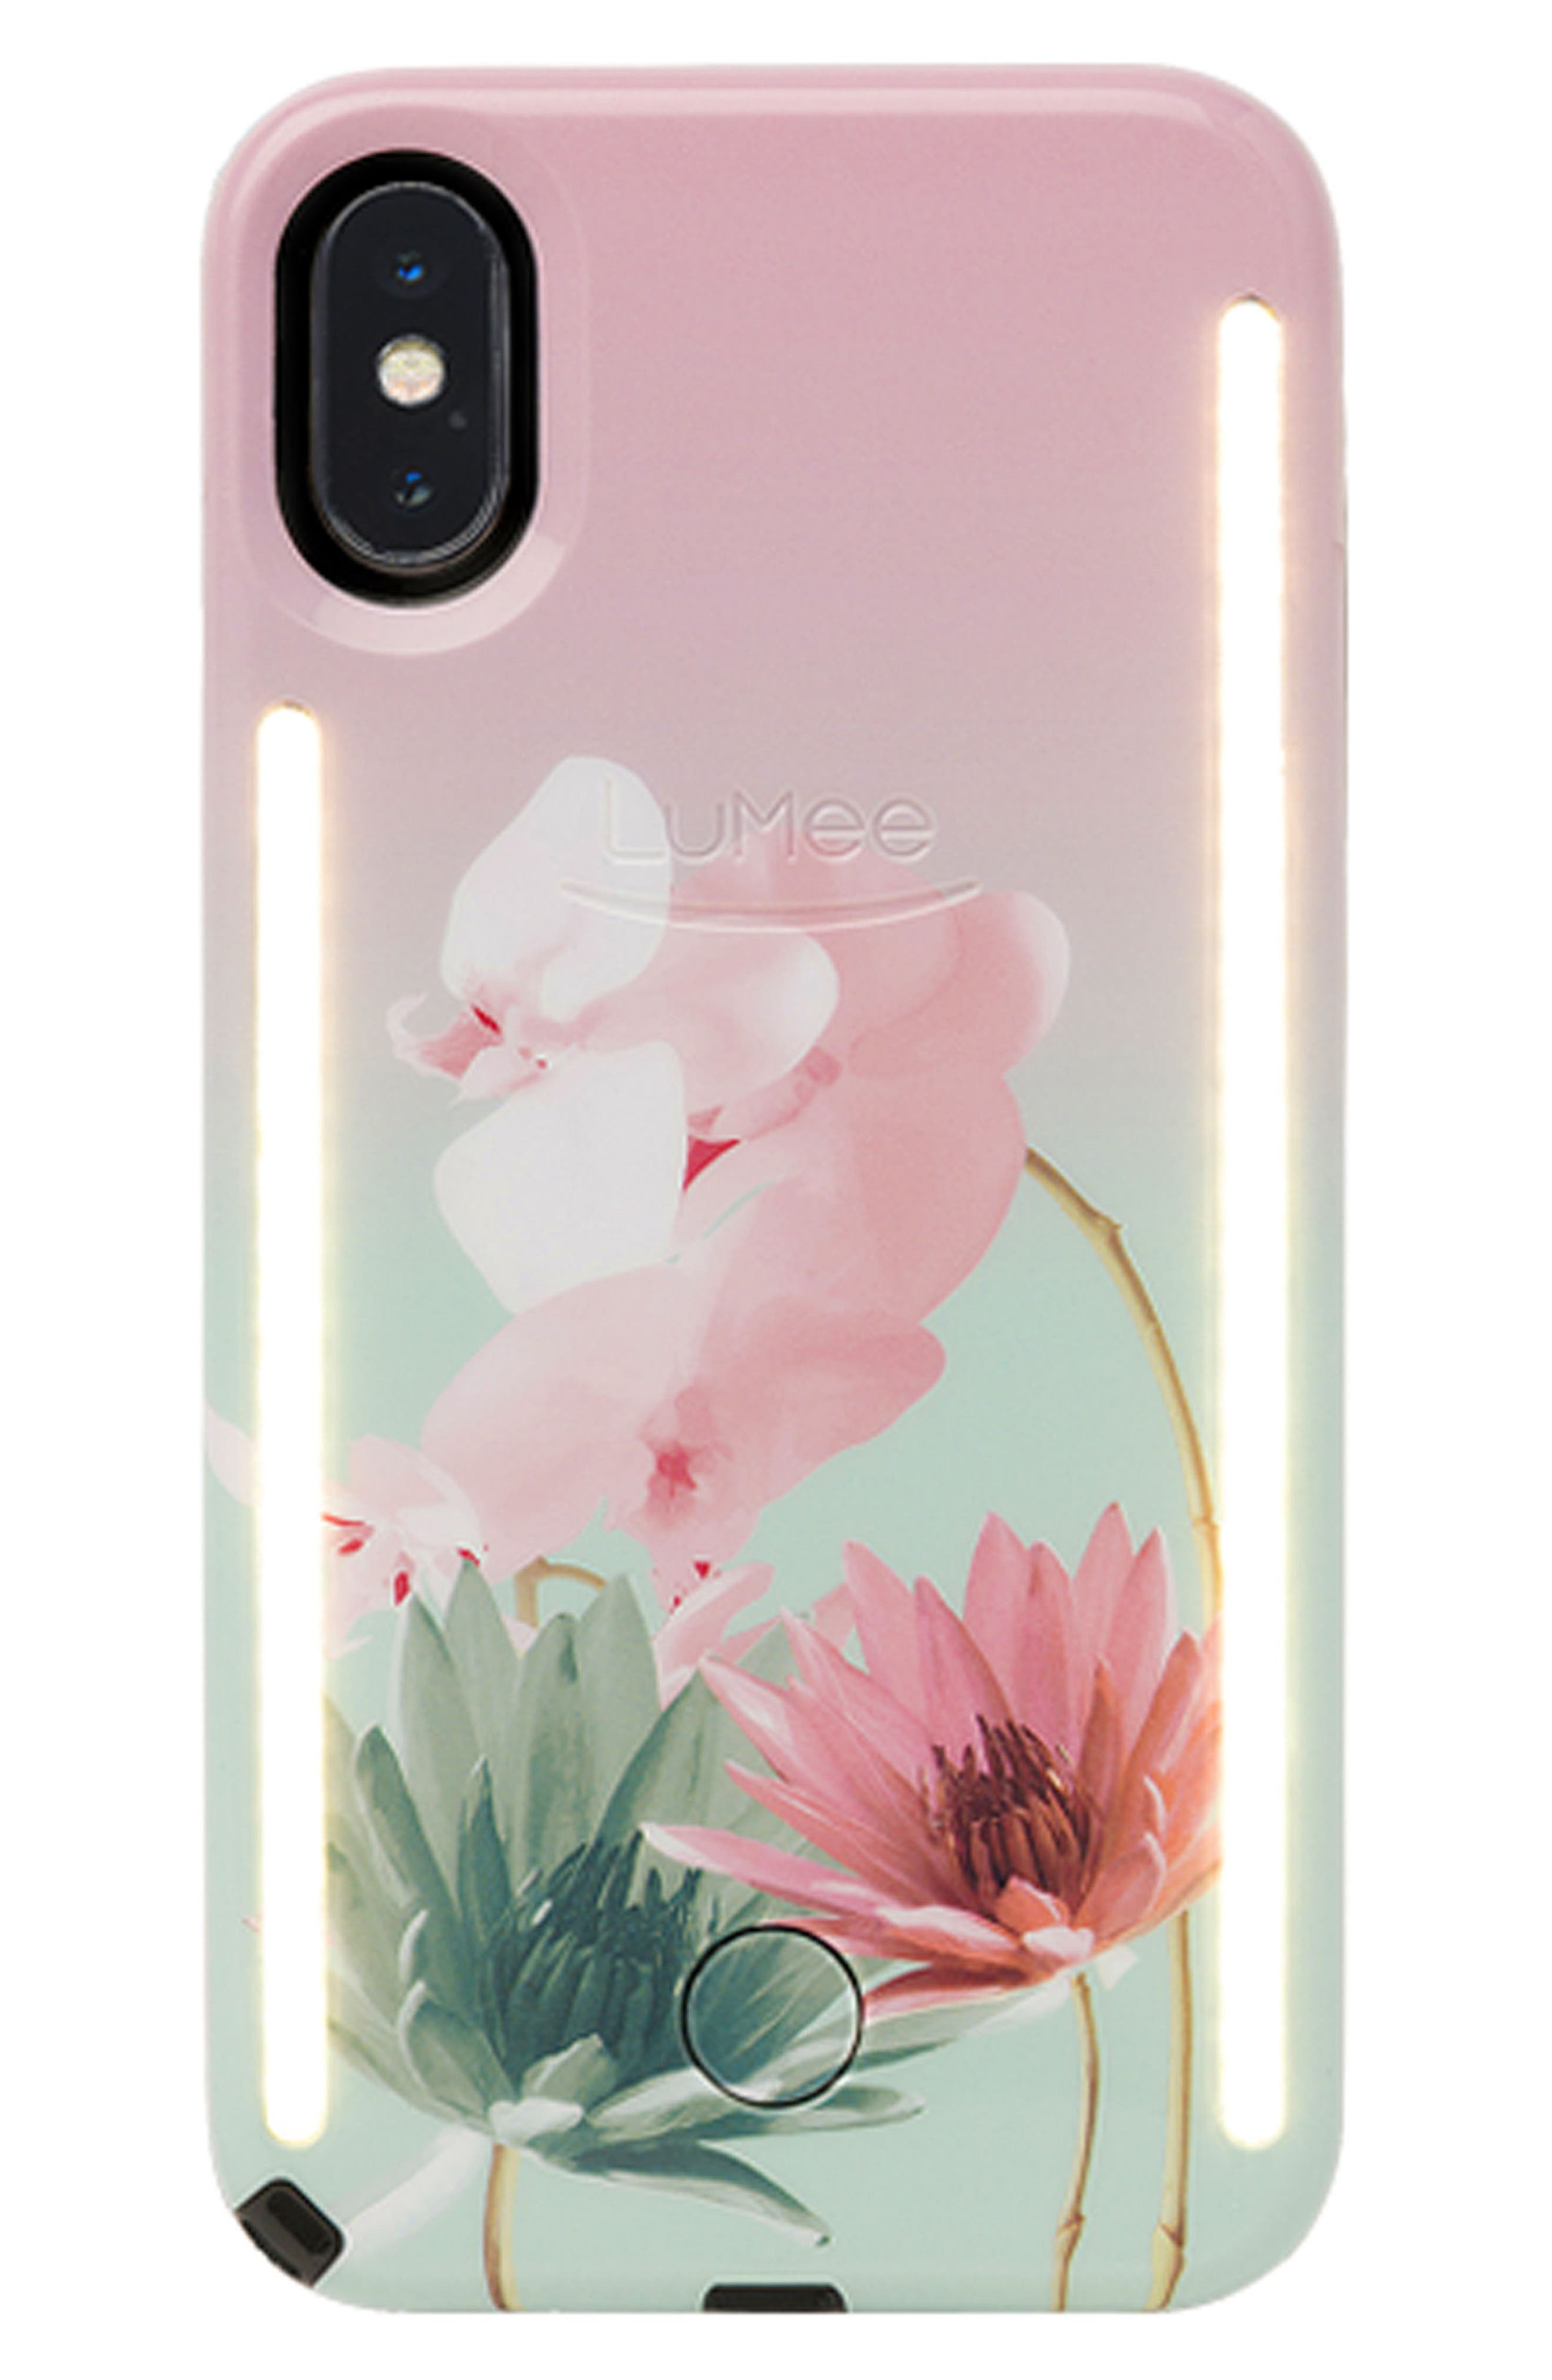 Duo LED Lighted iPhone X & Xs Case,                             Main thumbnail 1, color,                             DESERT FLOWER